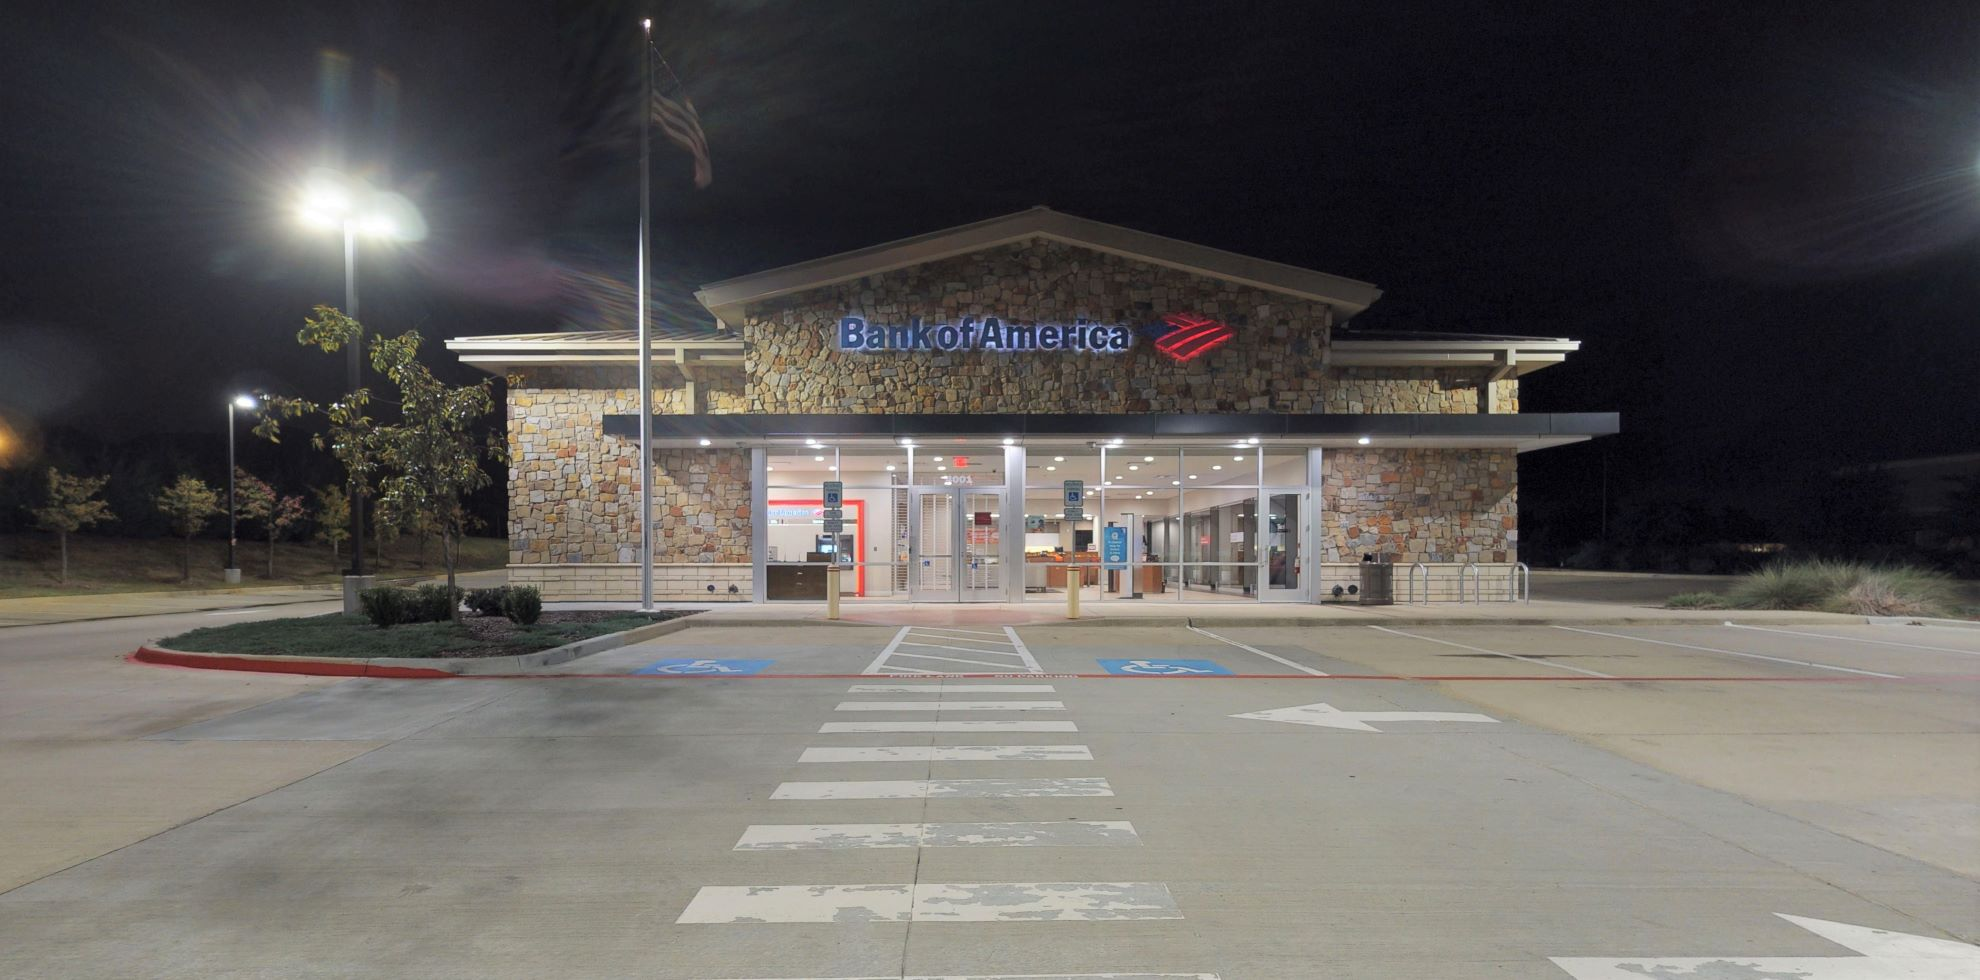 Bank of America financial center with drive-thru ATM | 4001 Cross Timbers Rd, Flower Mound, TX 75028